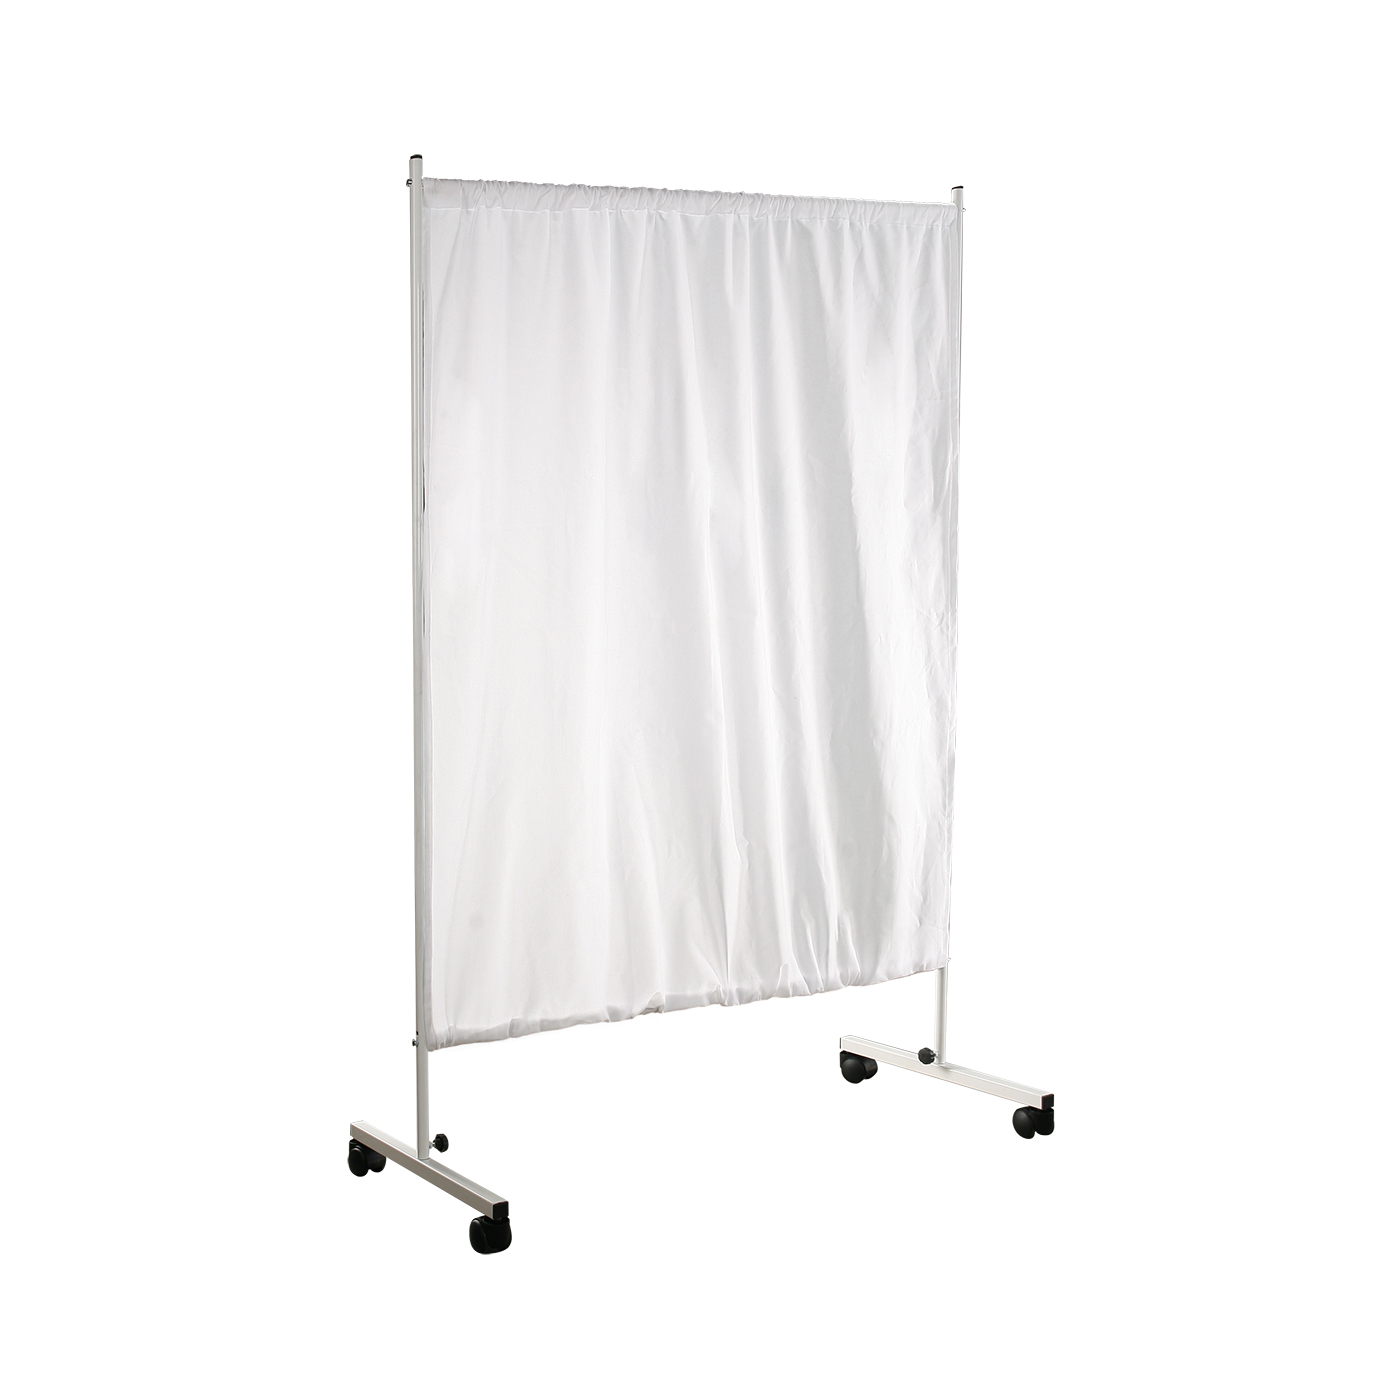 Privacy medical screens